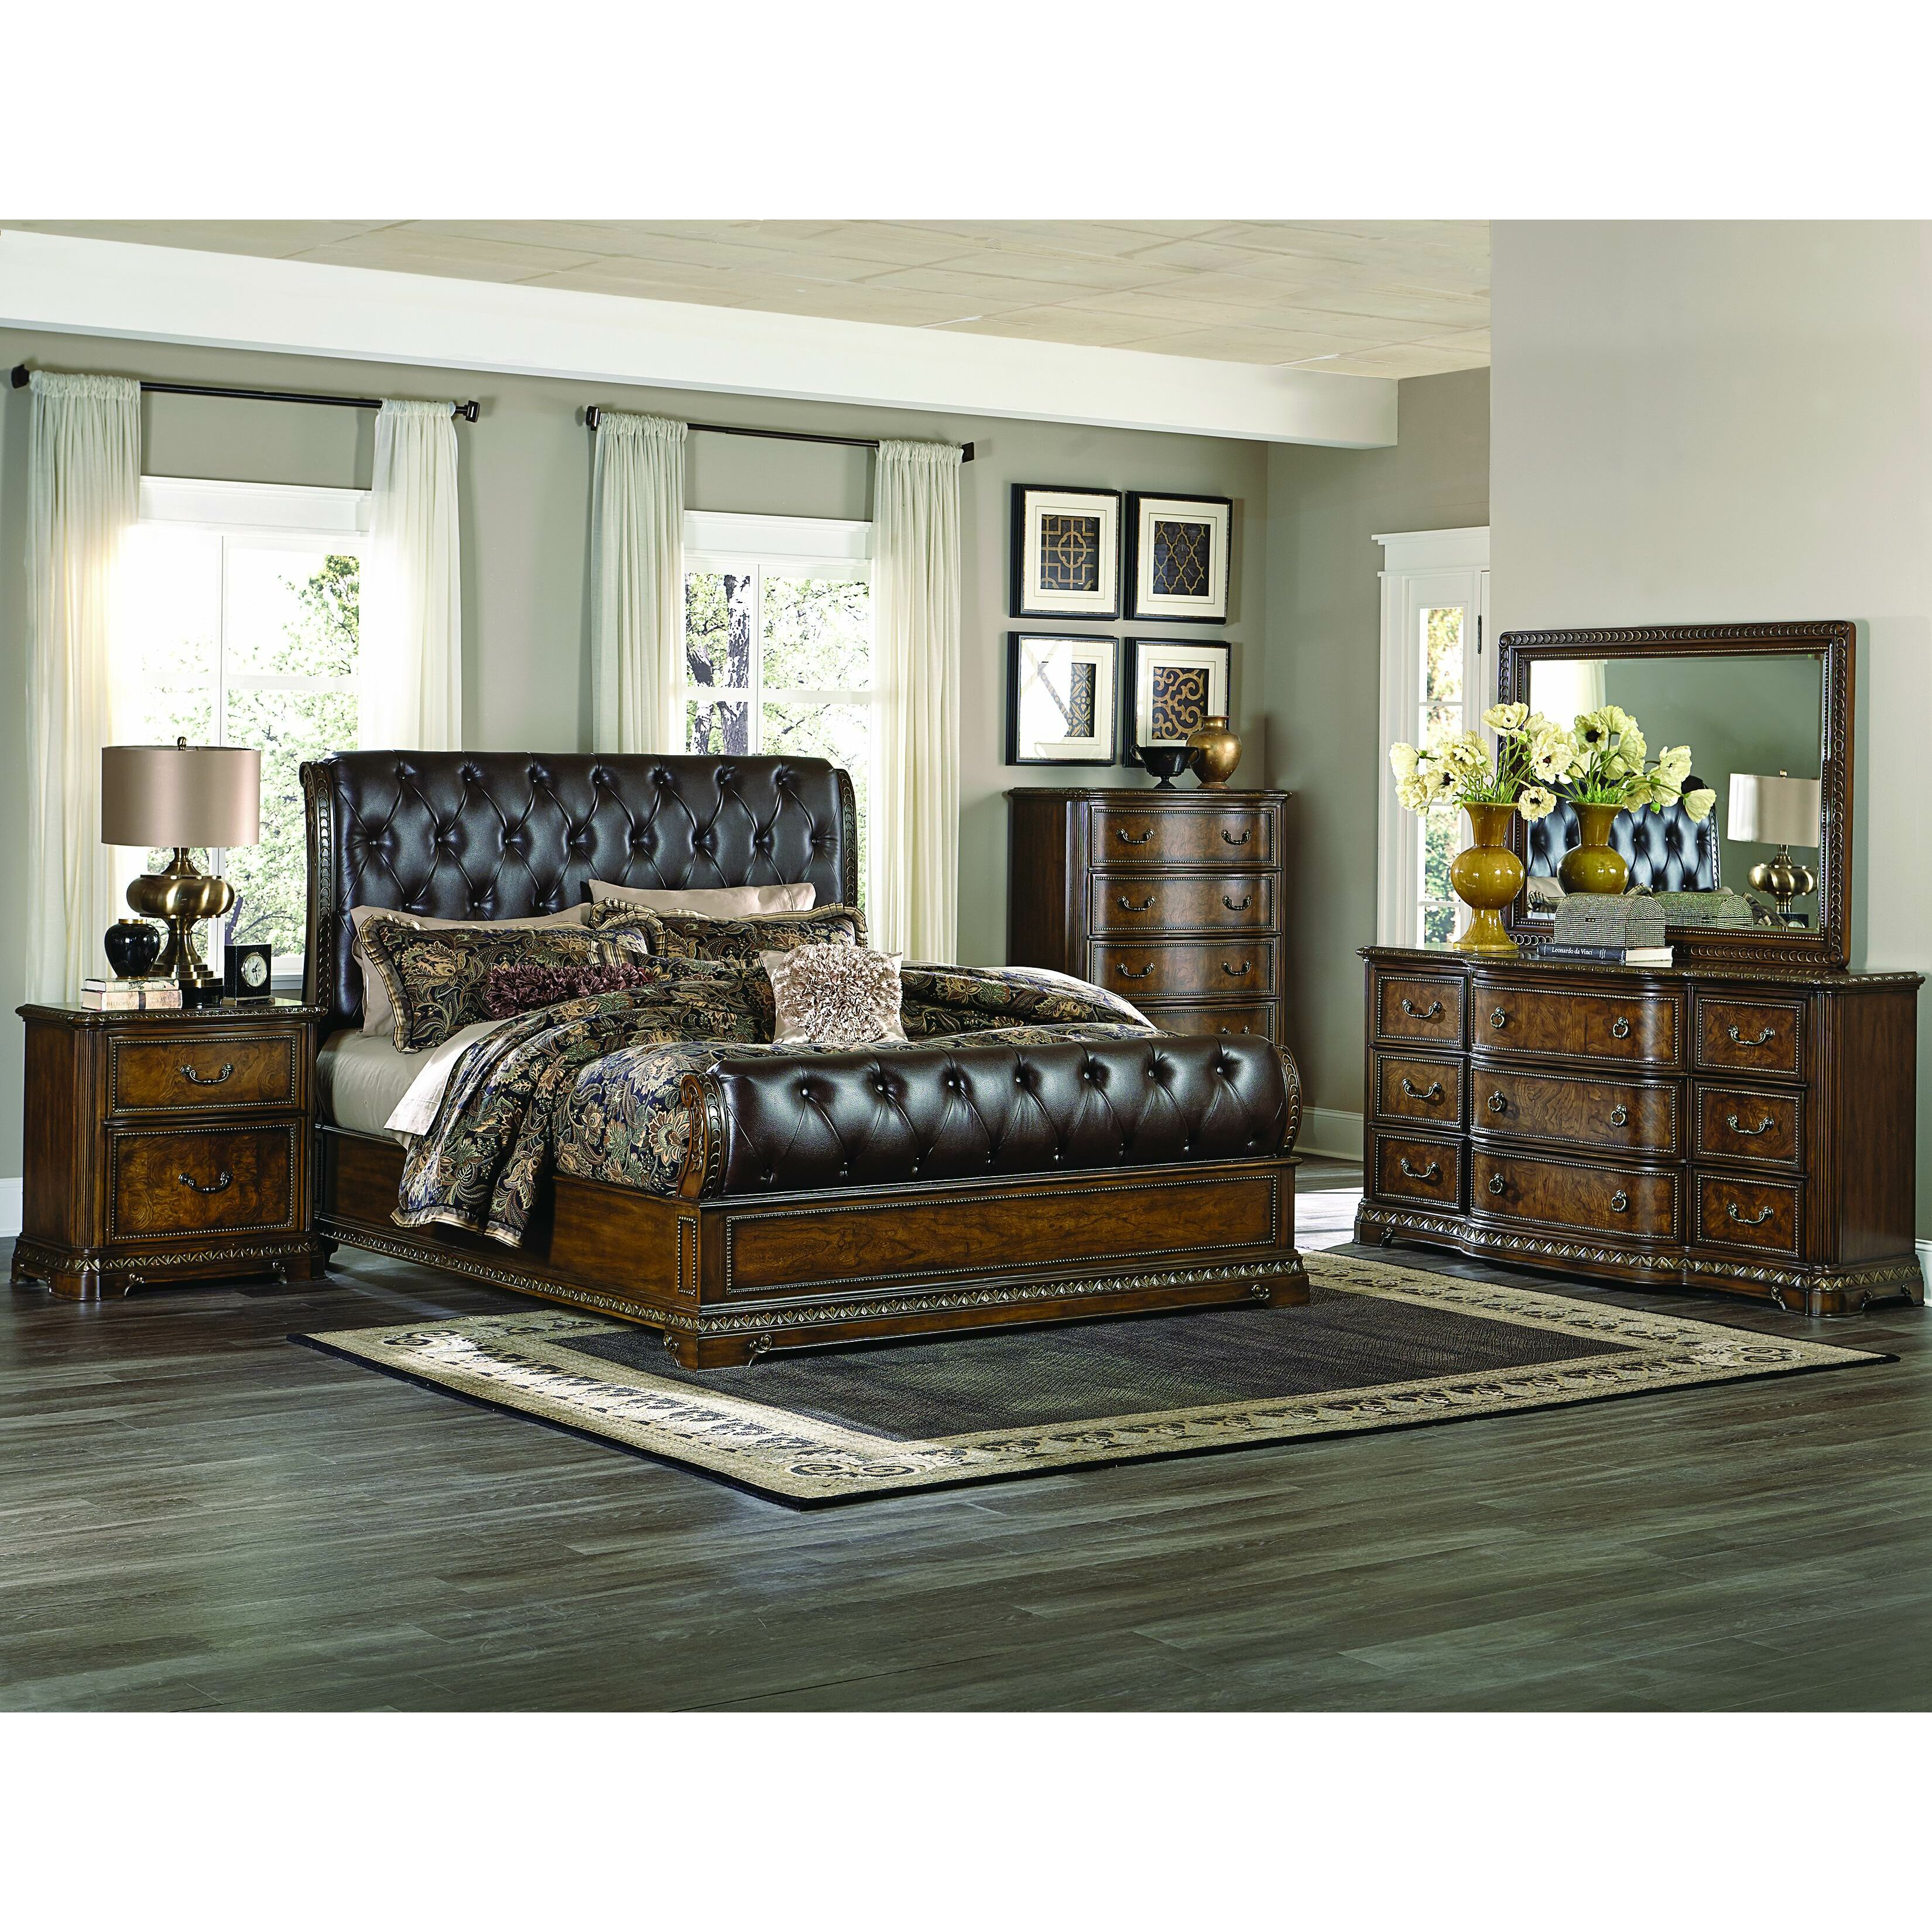 Homelegance Brompton Lane Sleigh Customizable Bedroom Set. Homelegance Brompton Lane Sleigh Customizable Bedroom Set   Wayfair